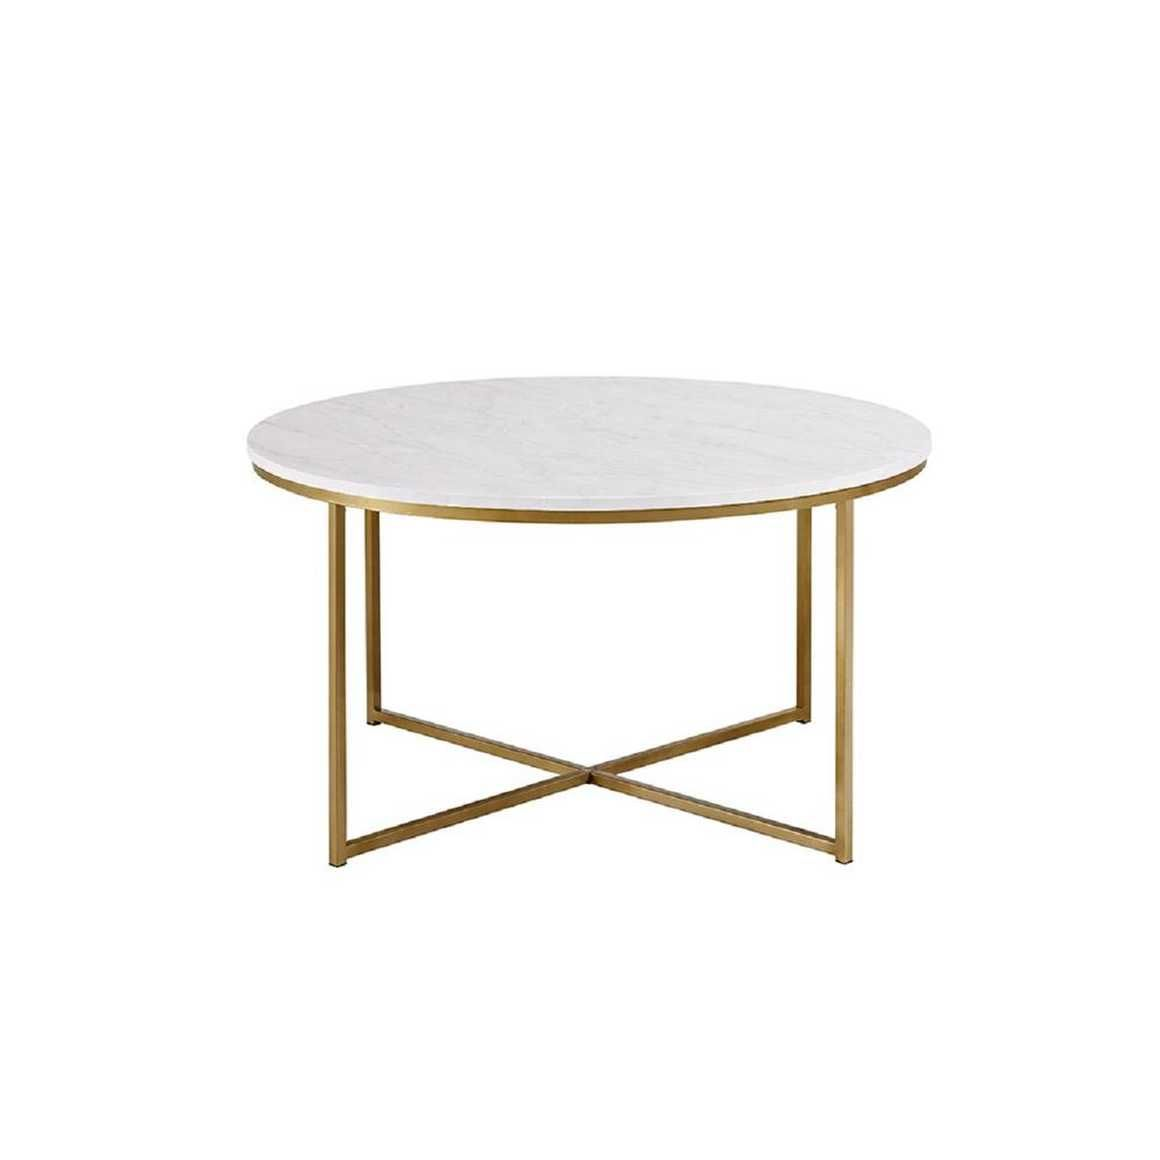 36 In Faux Marble Gold Coffee Table With X Base By Home Depot Coffee Table Gold Coffee Table Living Room Coffee Table